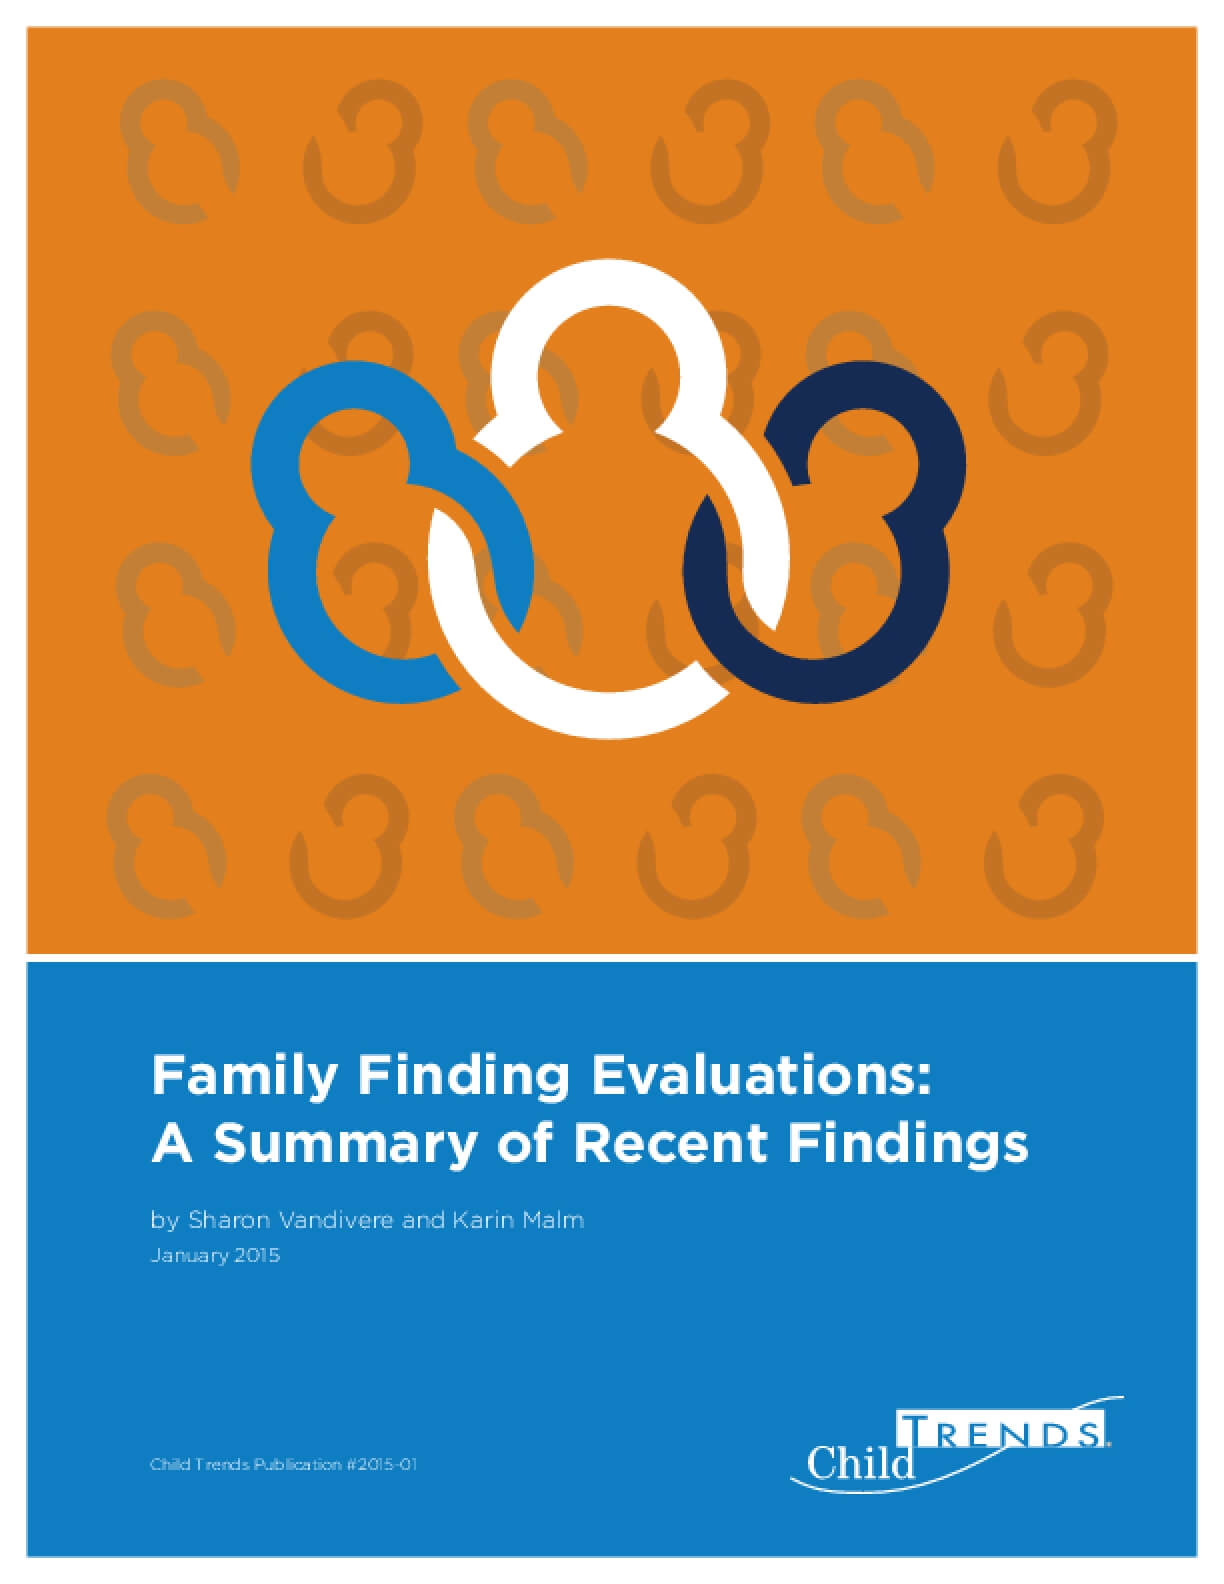 Family Finding Evaluations: A Summary of Recent Findings